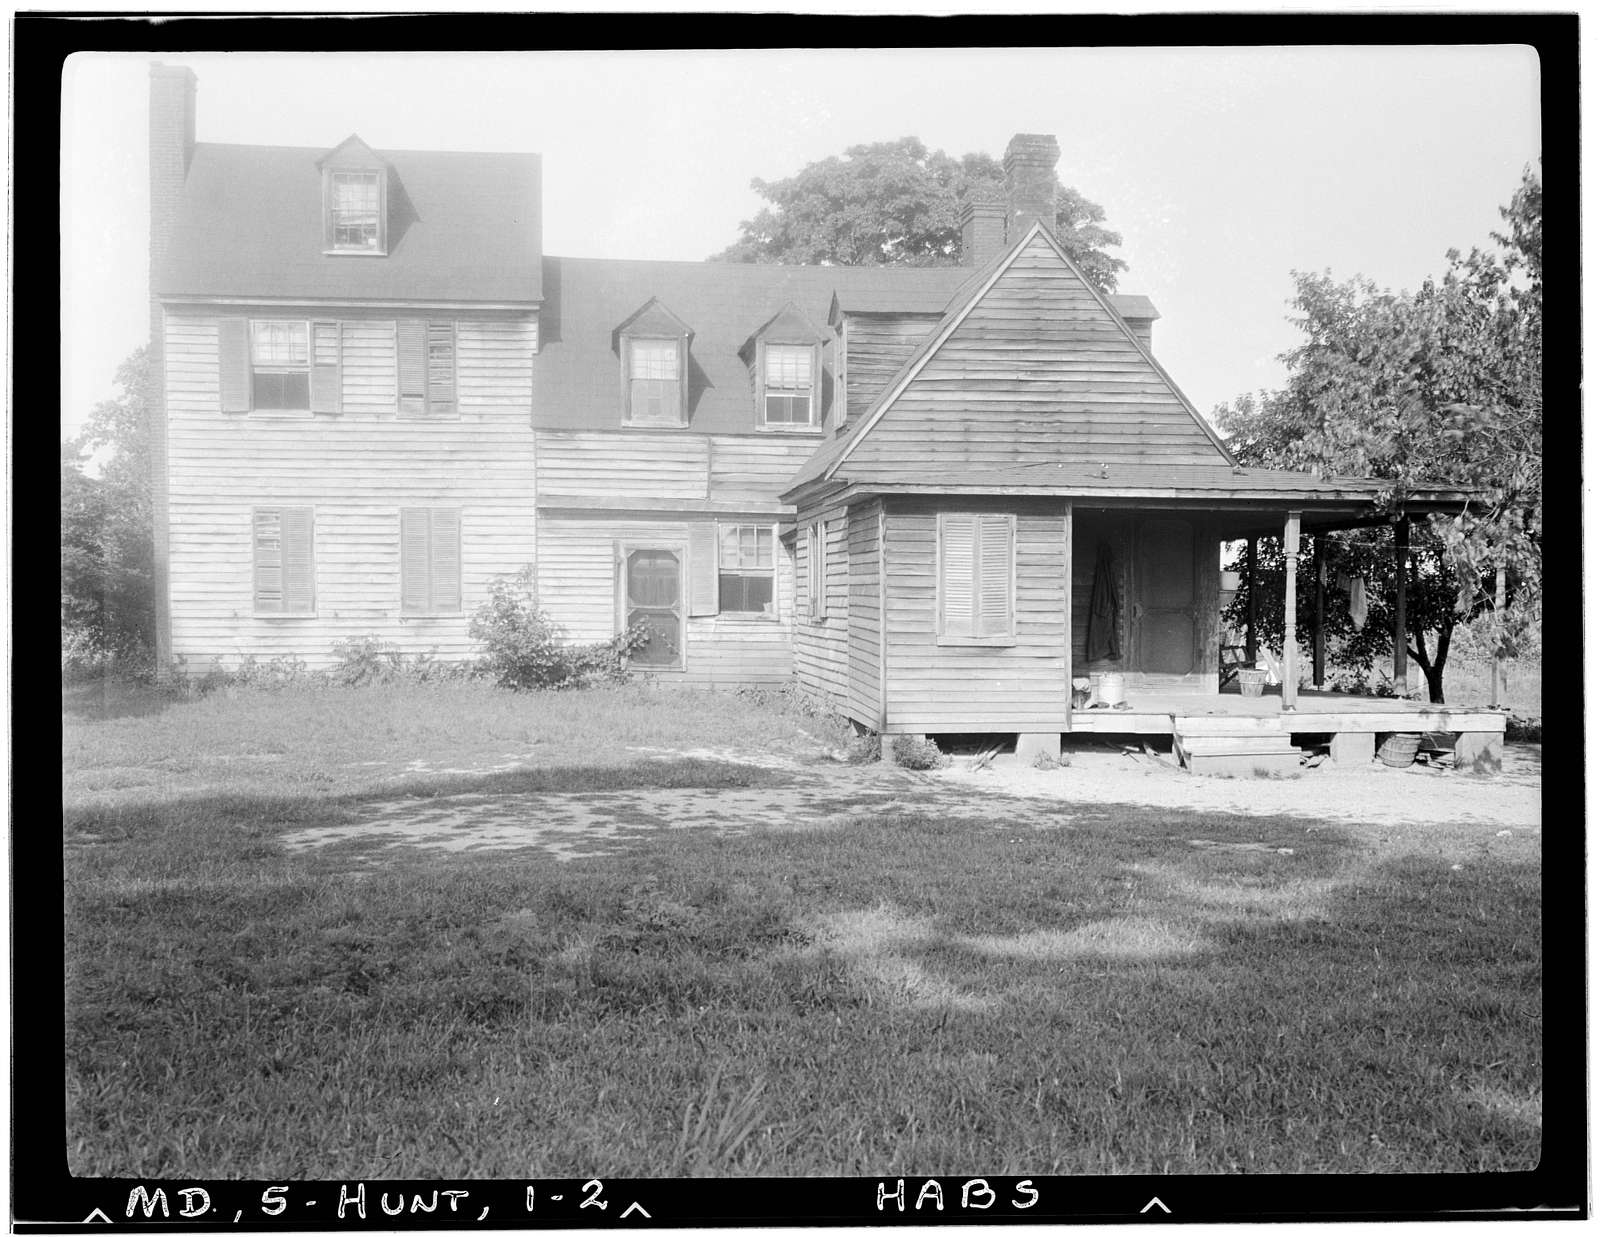 John Stanforth House, Lowery Road vicinity, Huntingtown, Calvert County, MD